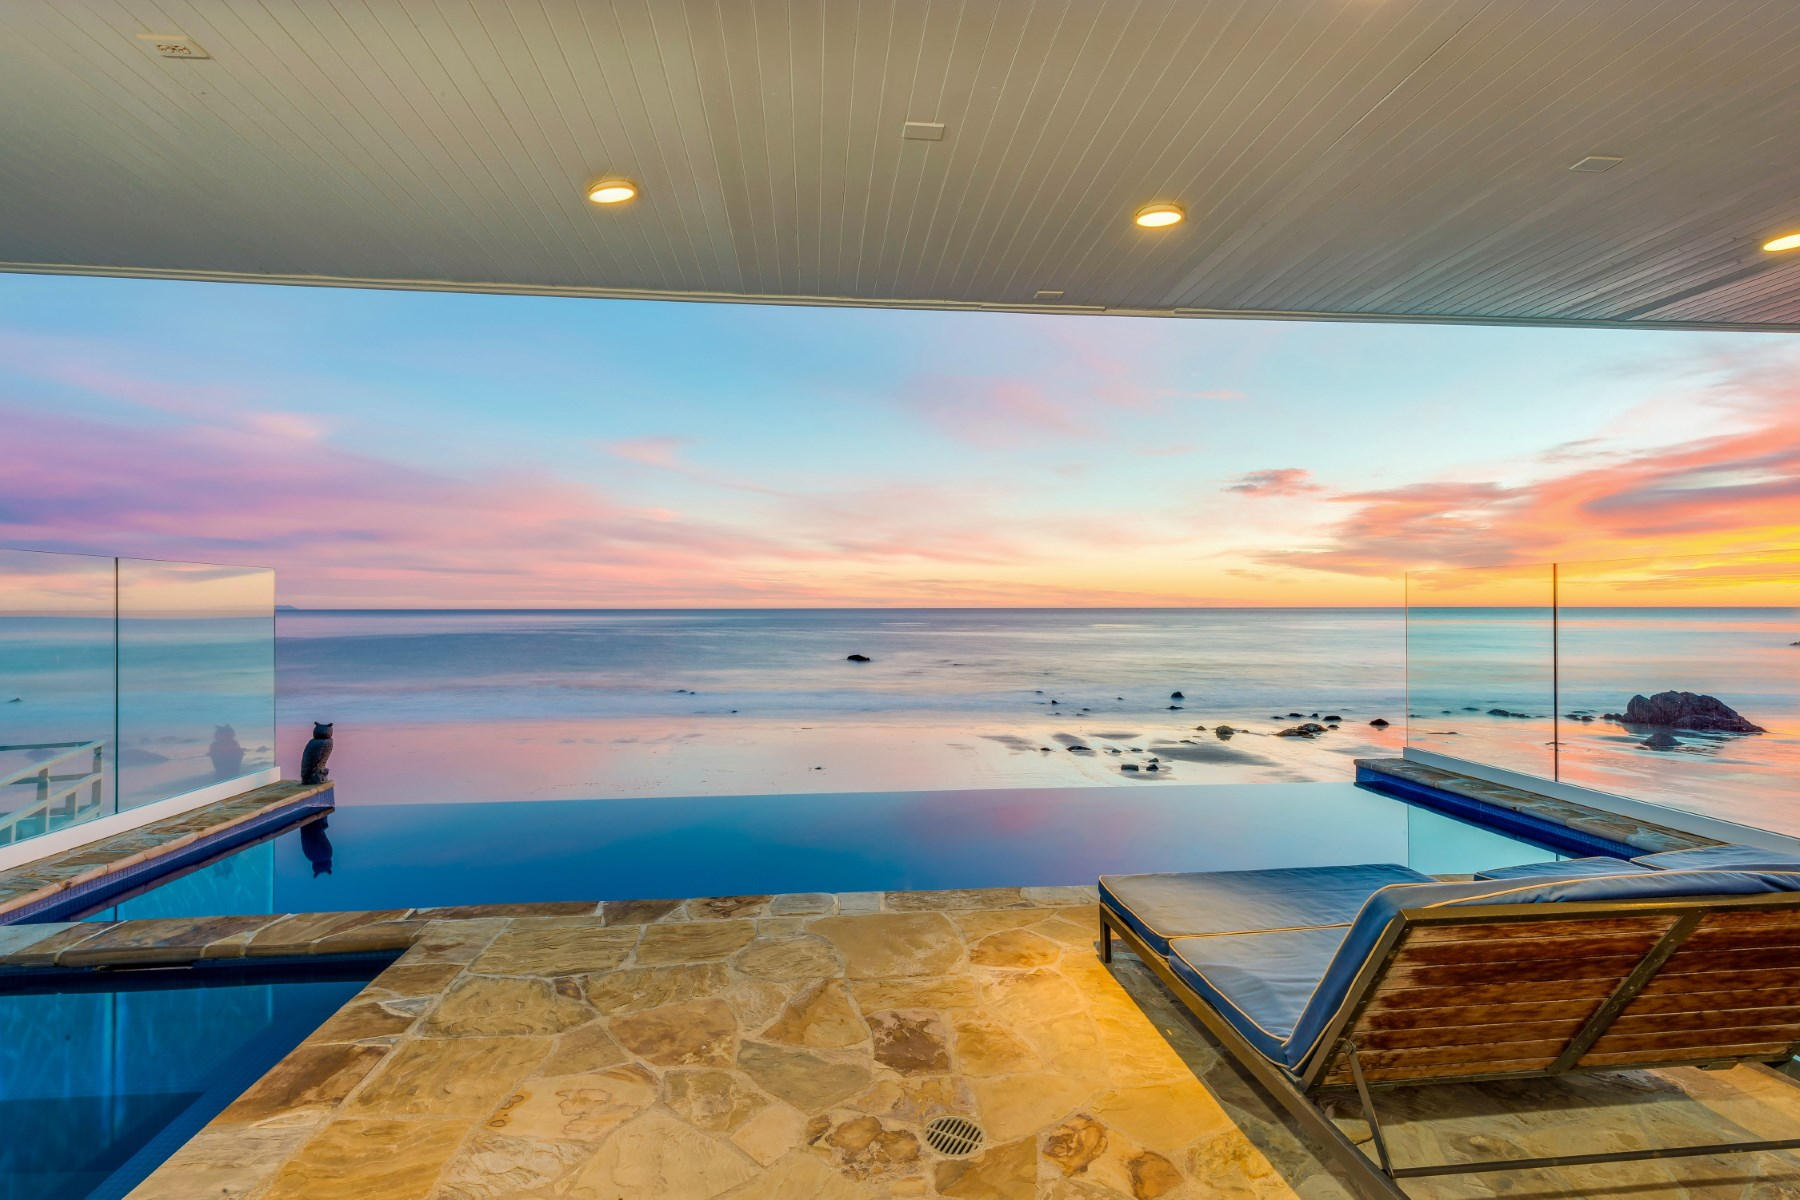 Single Family Home for Sale at Malibu Broad Beach Experience 31412 Broad Beach Road Malibu, California 90265 United States